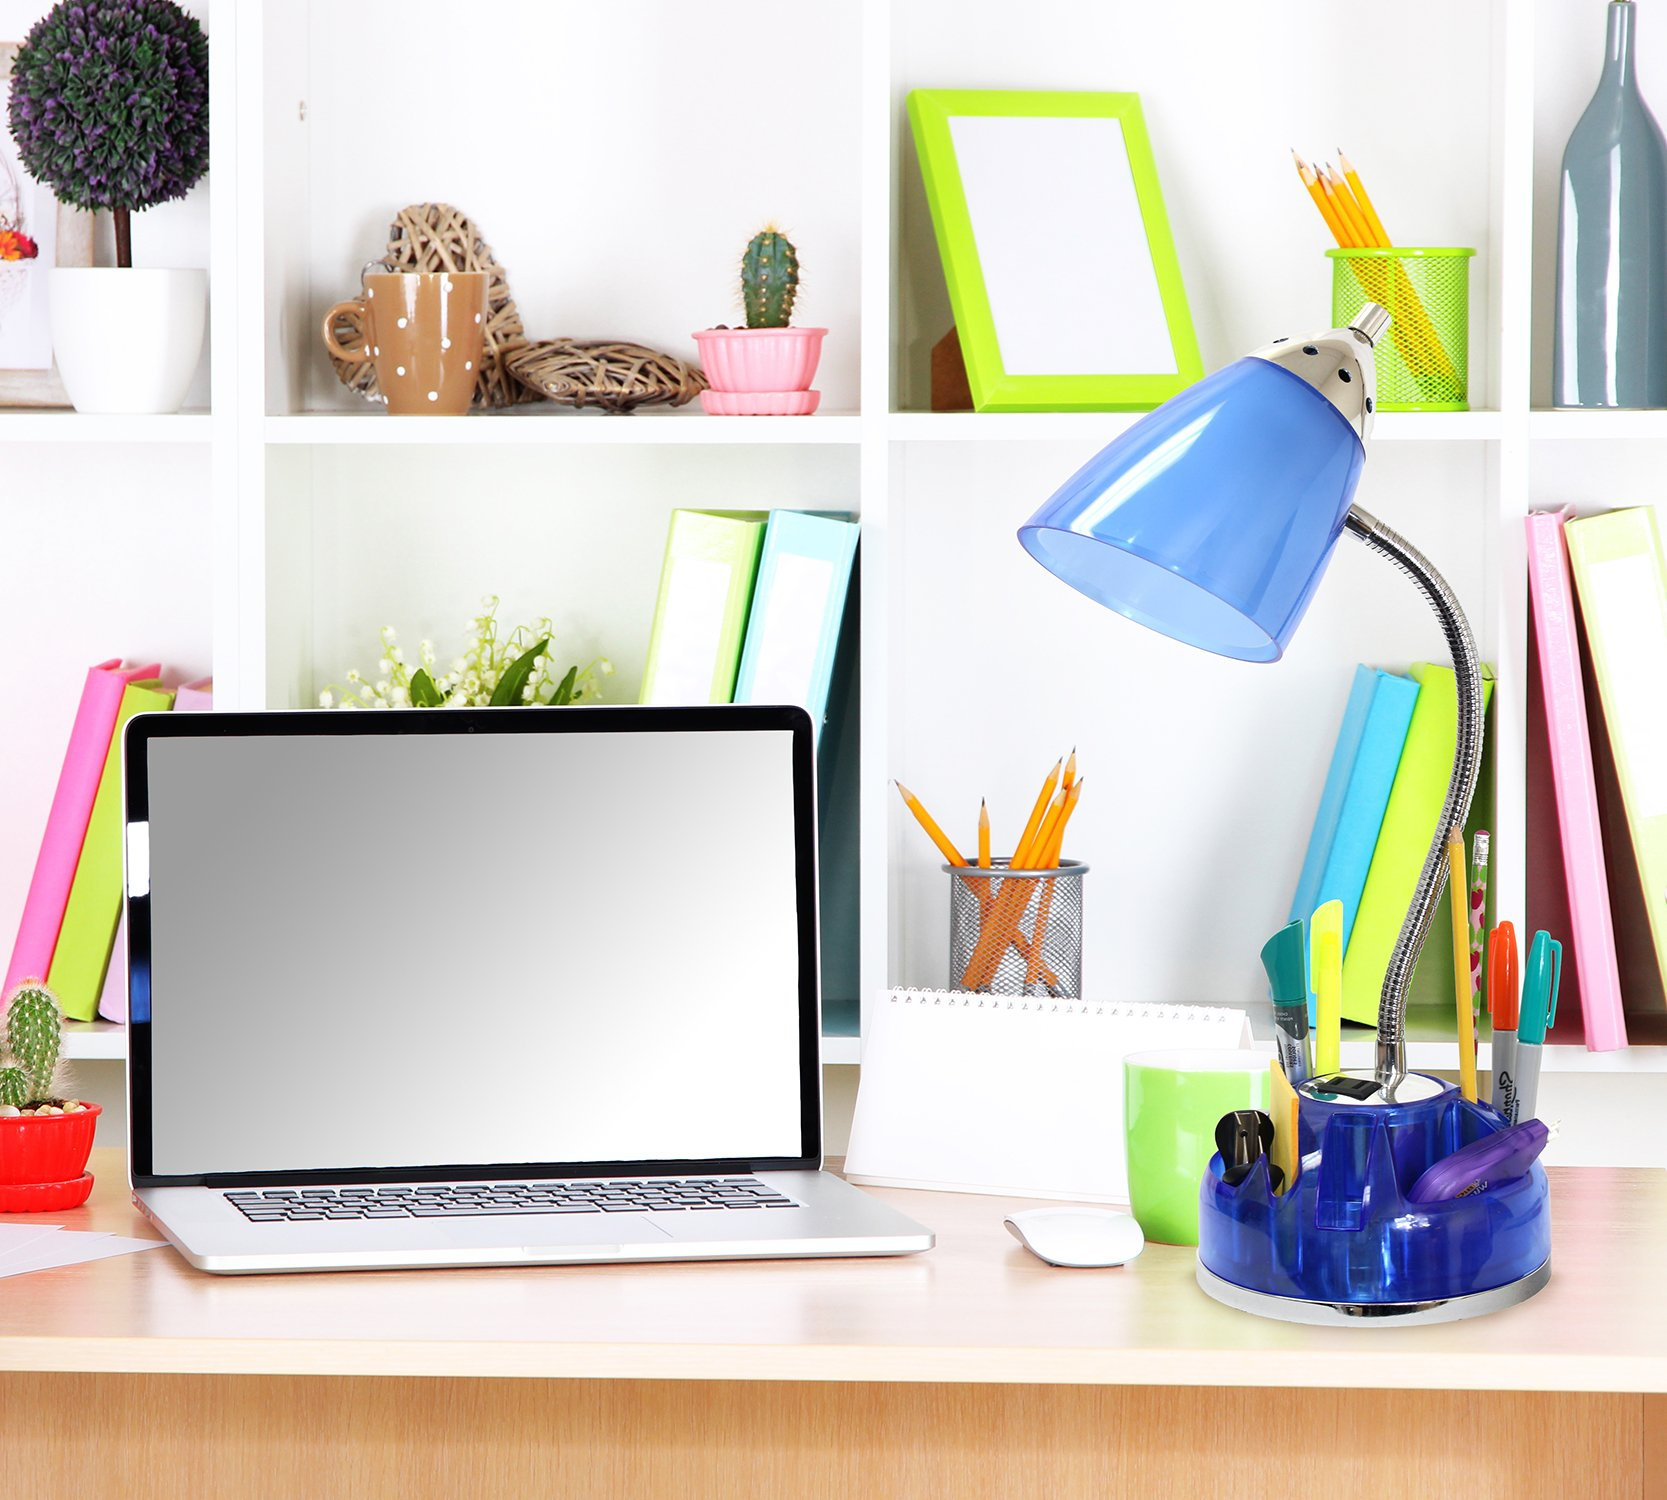 Limelights LD1015-CBL Organizer Desk Lamp with Charging Outlet Lazy Susan Base, Clear Blue by Limelights (Image #4)